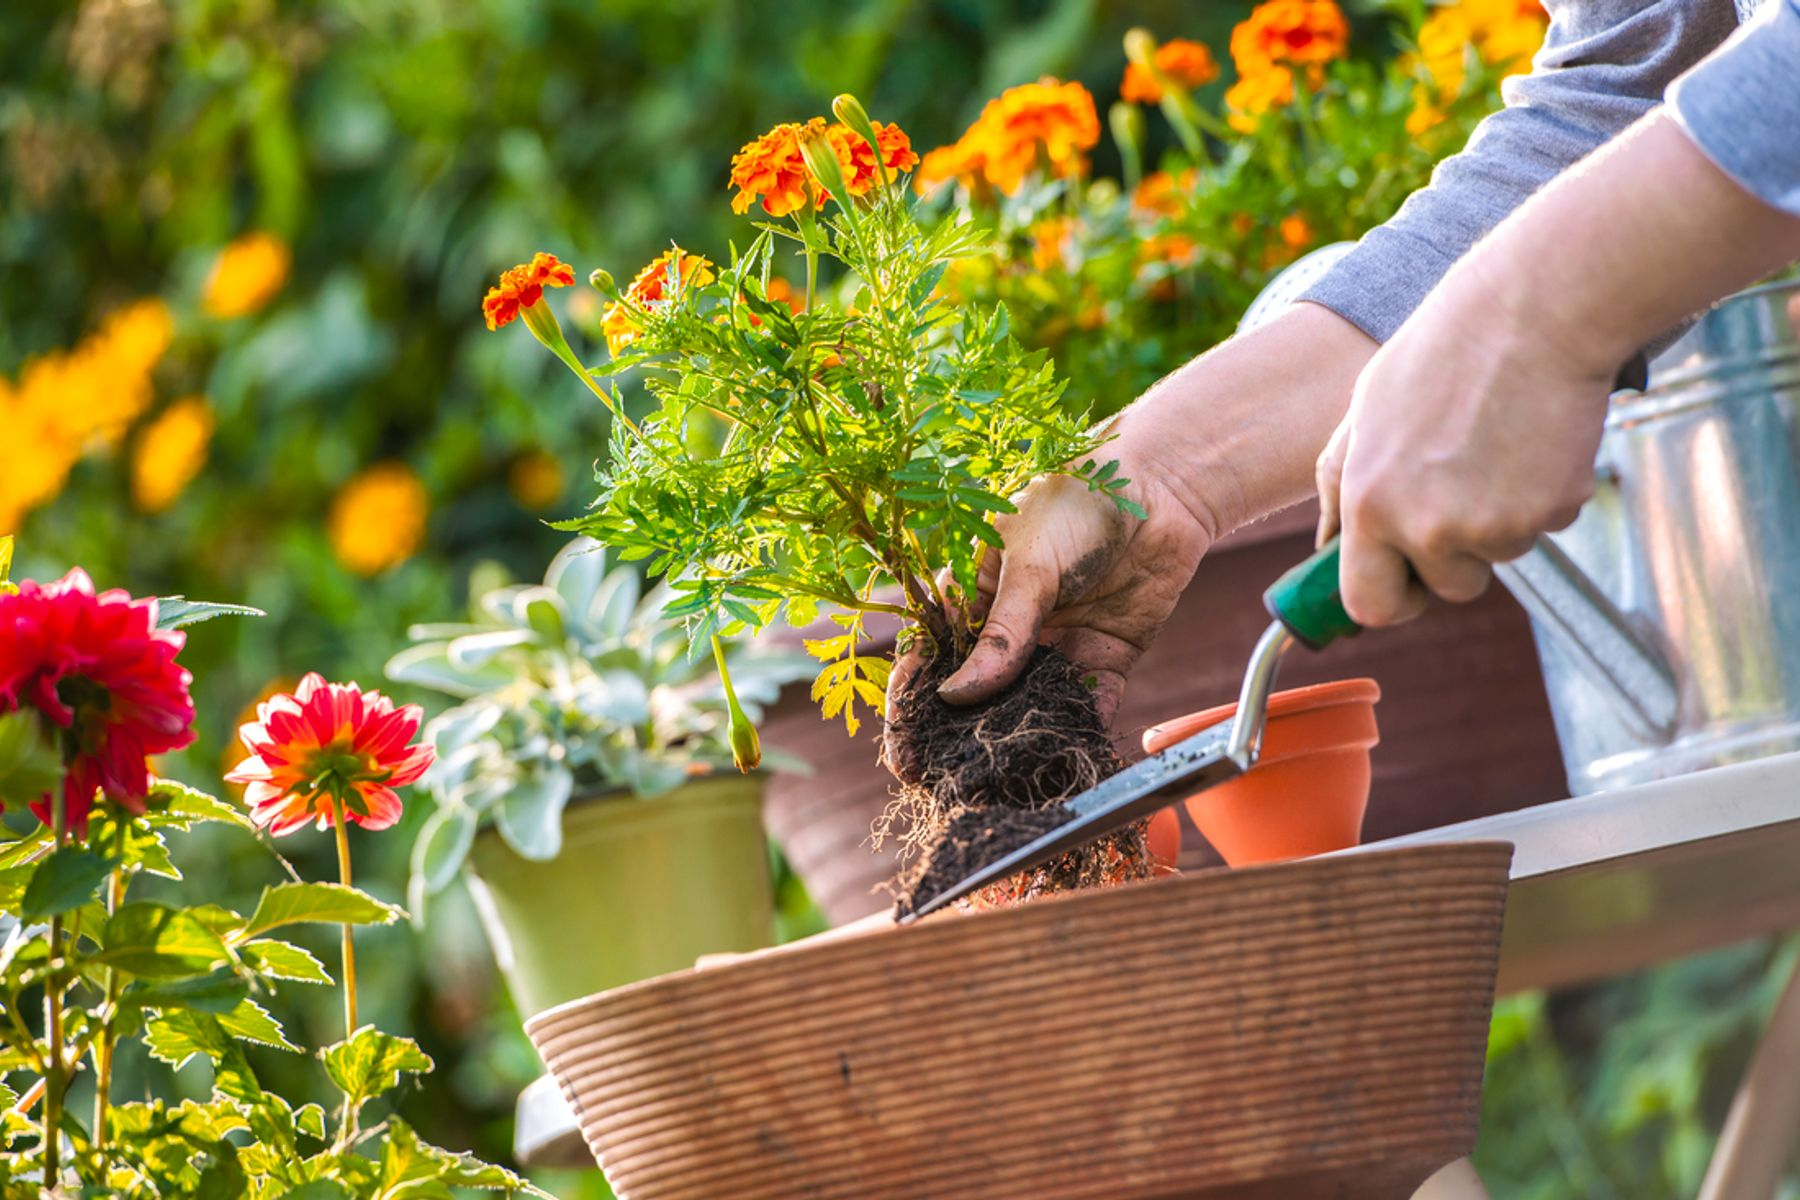 Image of plants being handled